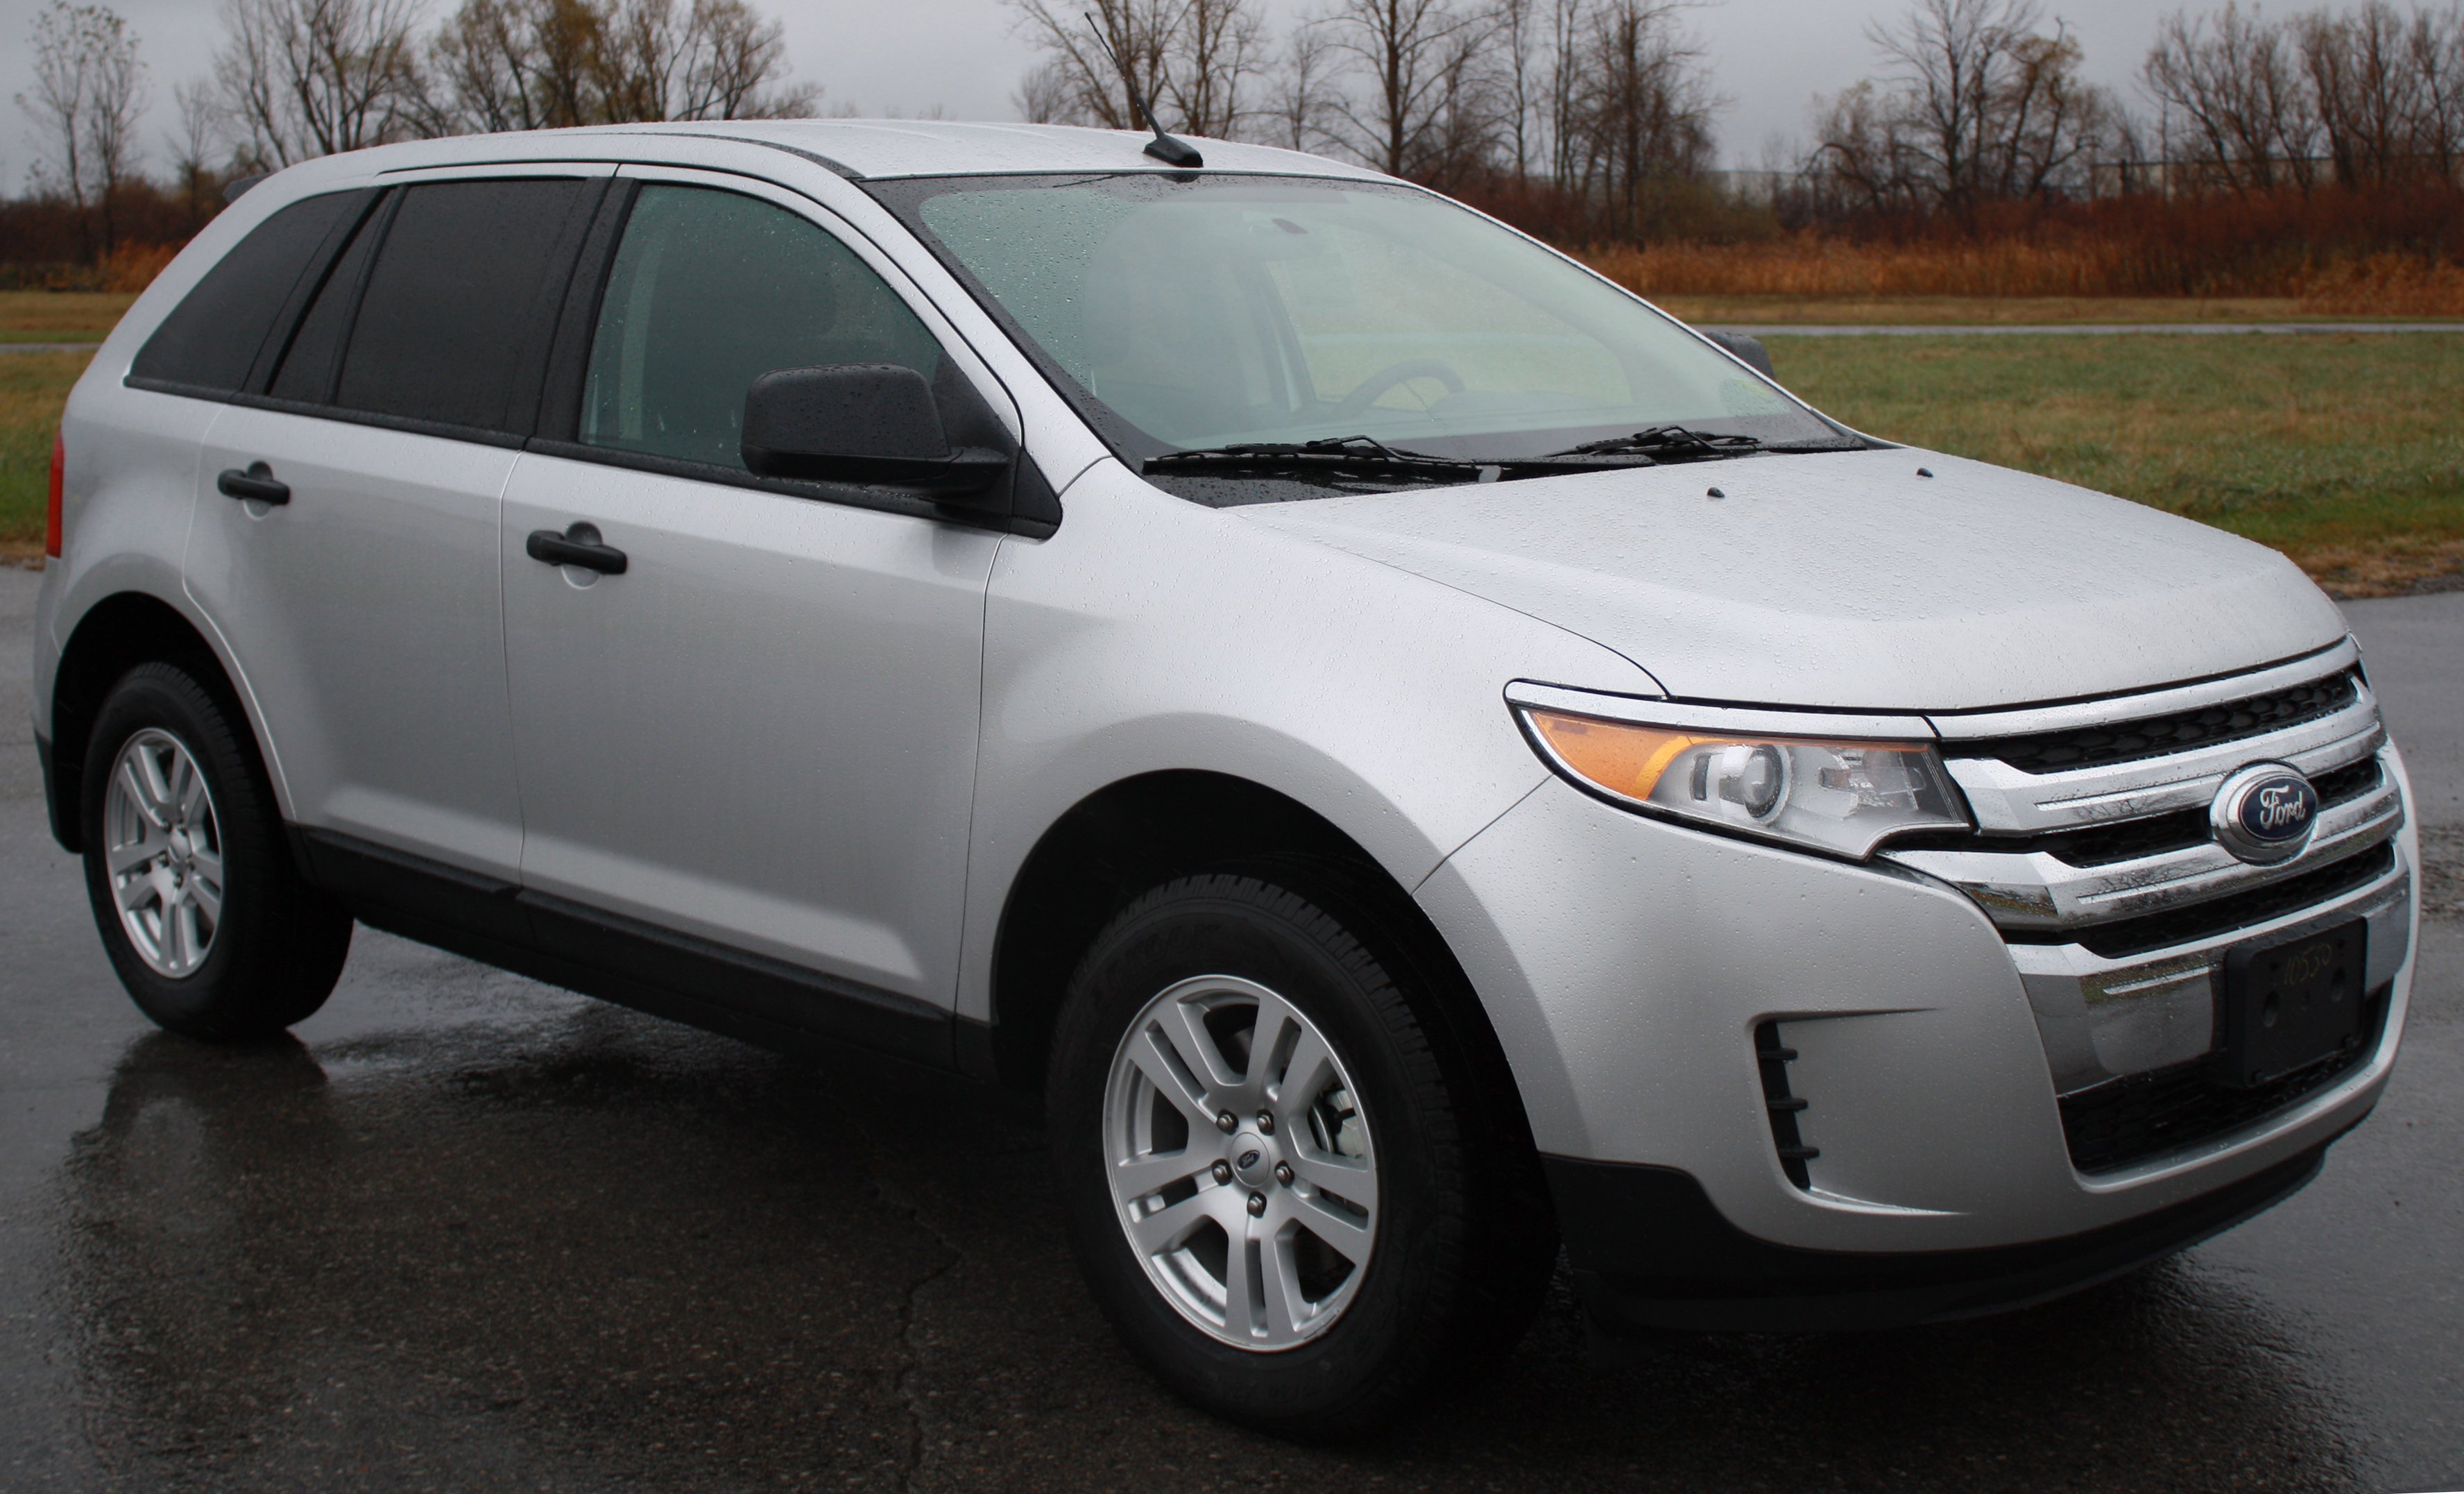 File2011 Ford Edge SE  NHTSA 1jpg  Wikimedia Commons